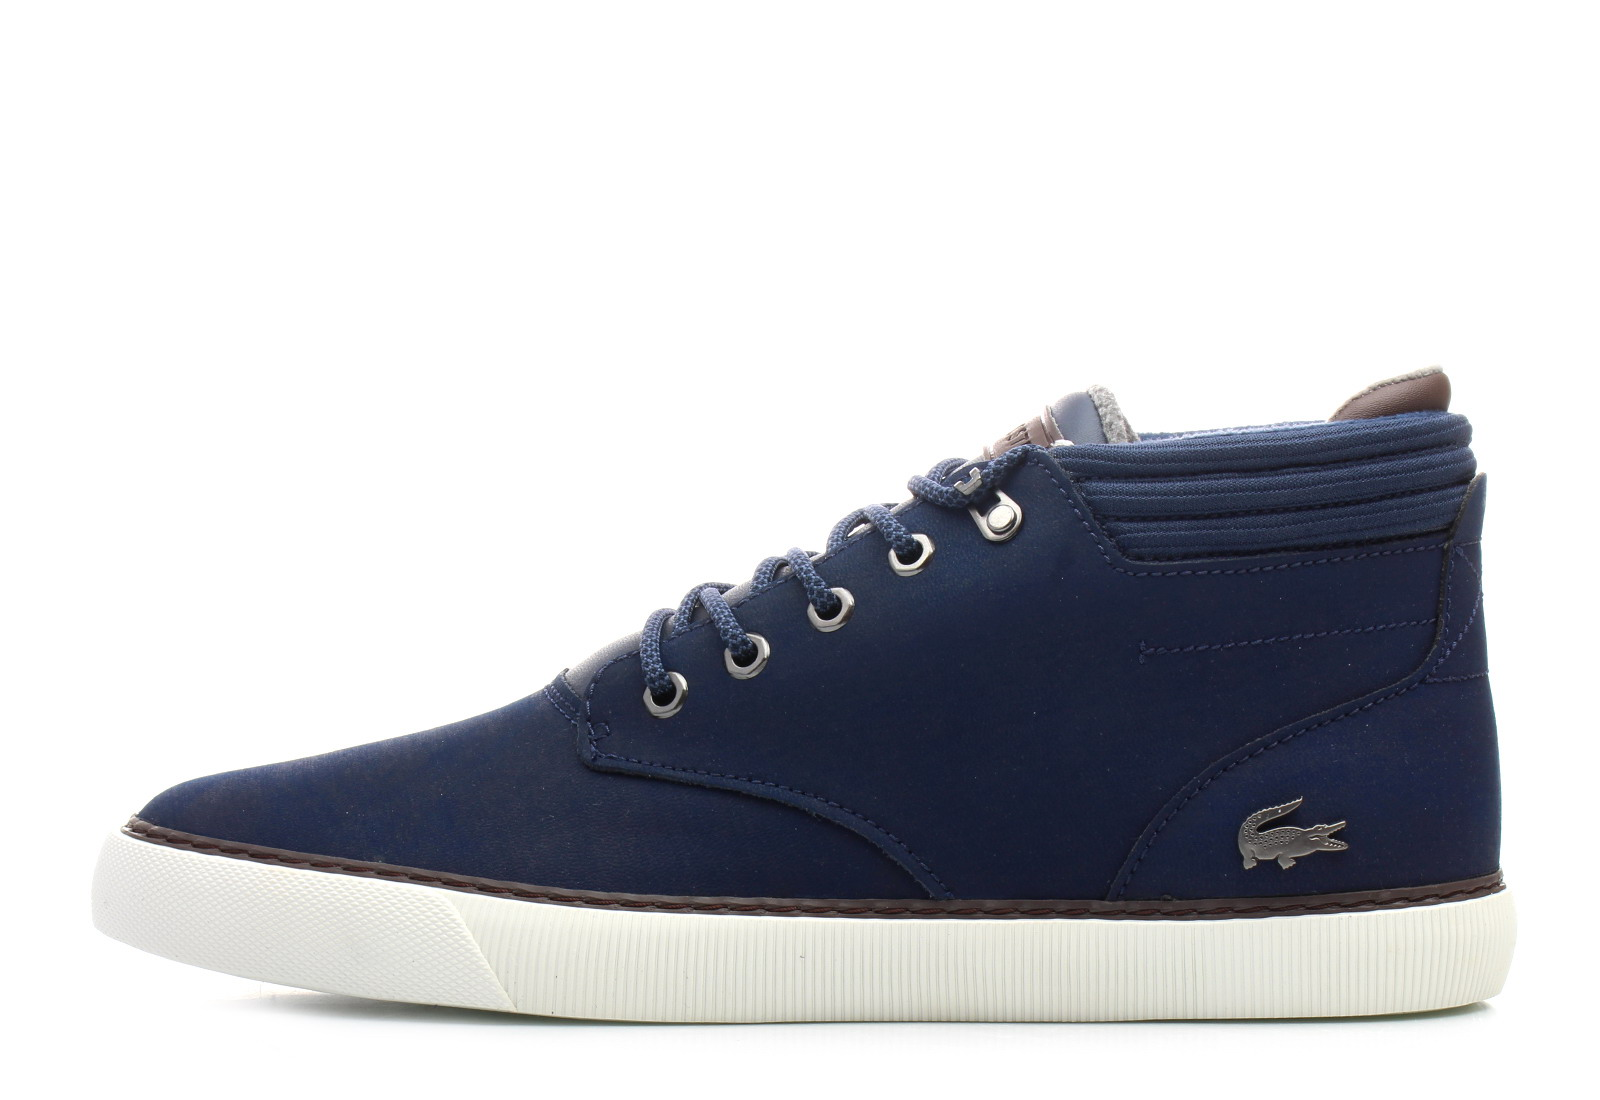 Lacoste Cipő - Esparre Winter - 183CAM0022-2Q8 - Office Shoes ... 633a04549f